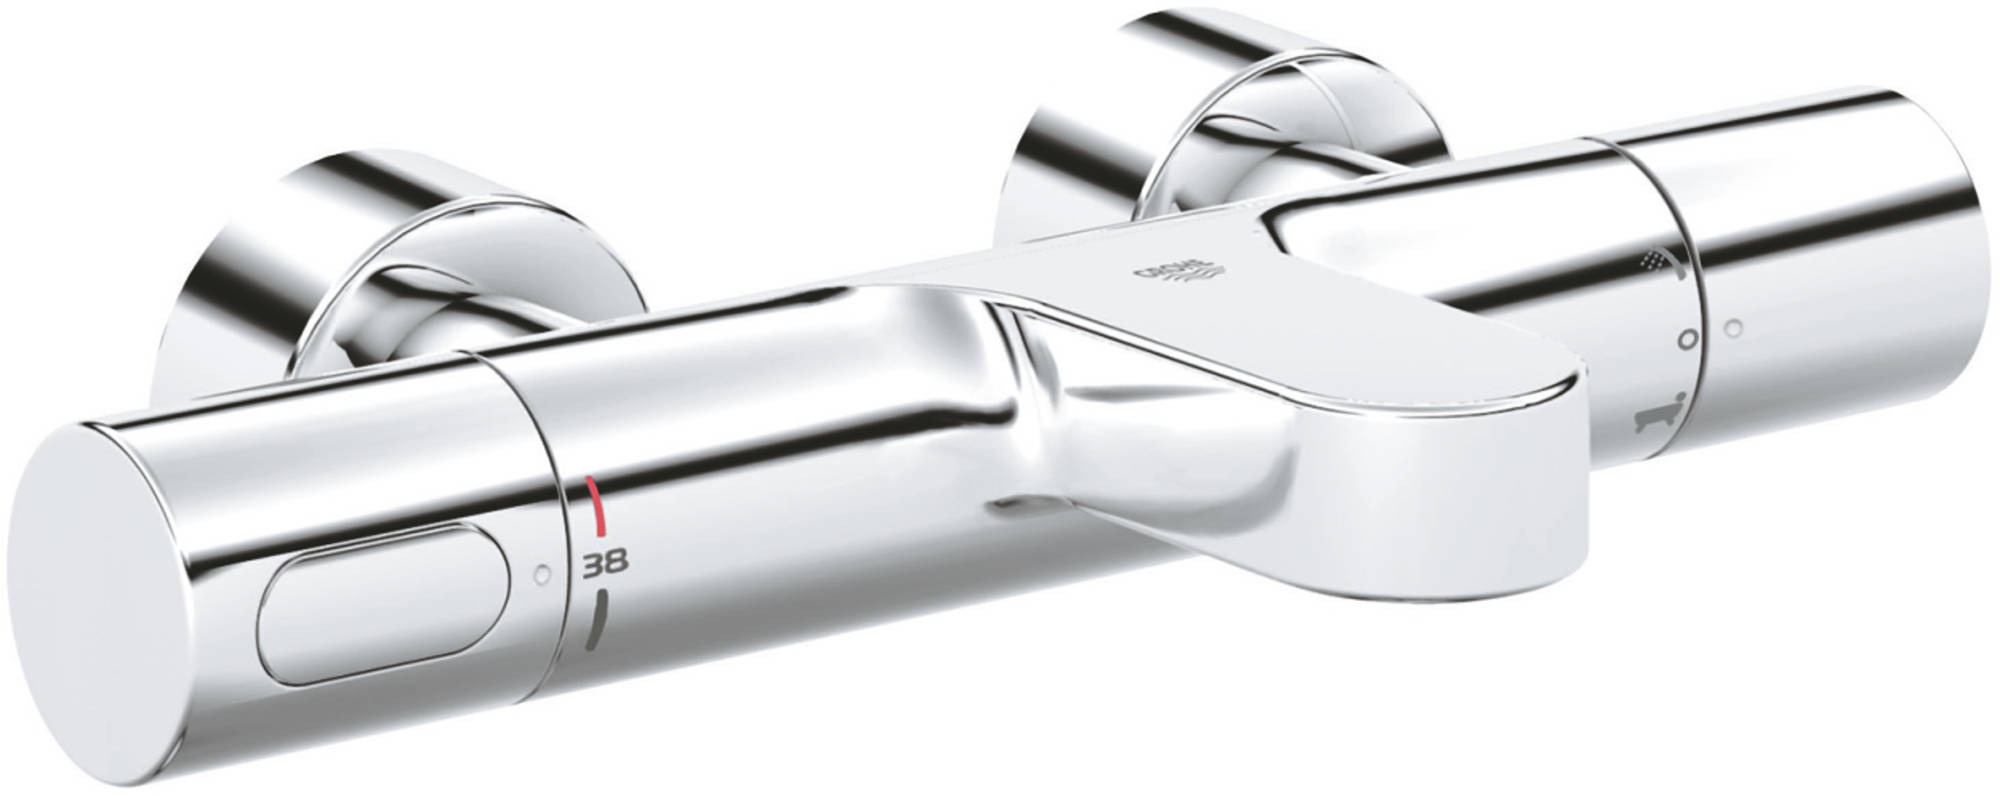 Grohe Grohtherm 3000 Cosmopolitan Badthermostaat Chroom